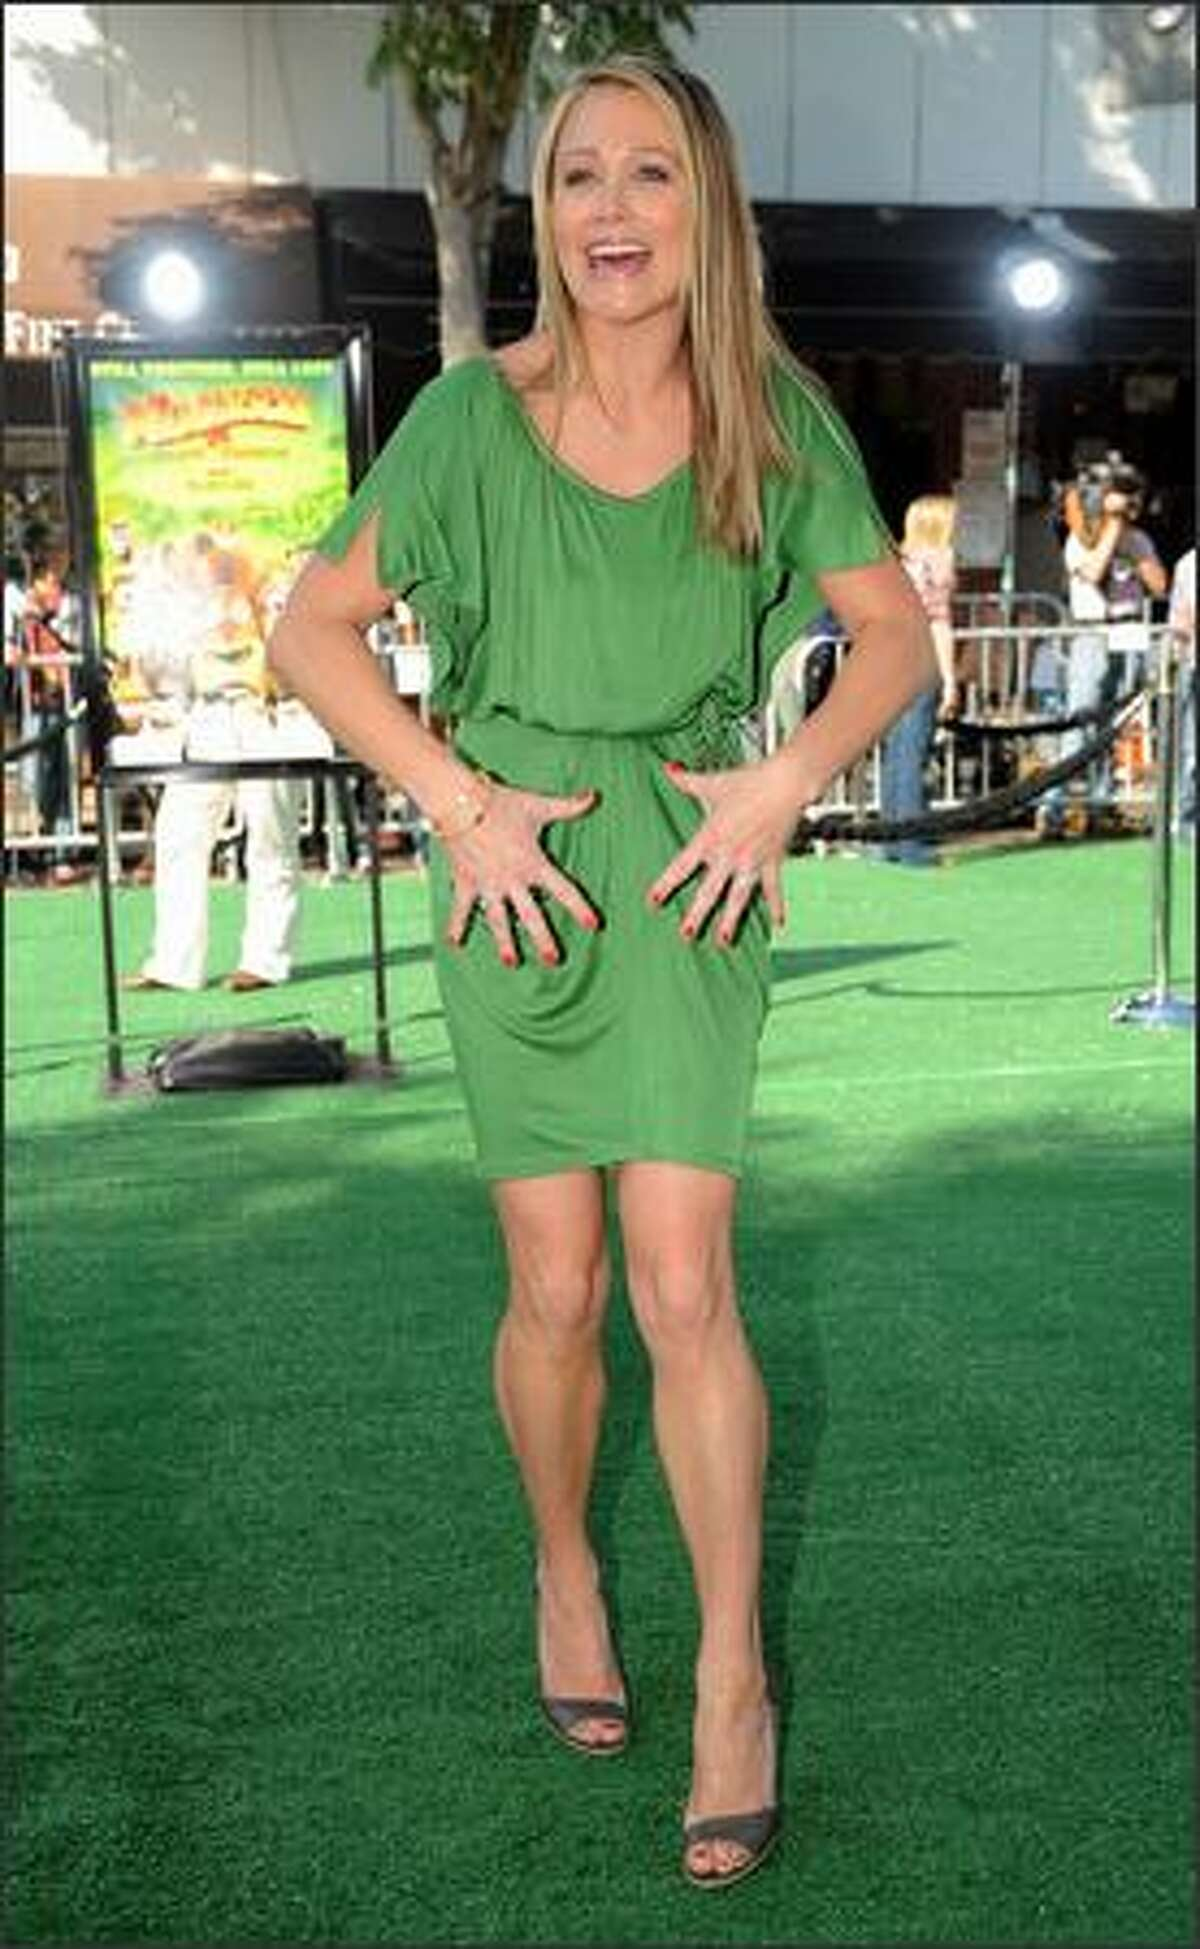 Actor Ben Stiller's wife, actress Christine Taylor arrives at the Los Angeles premiere of